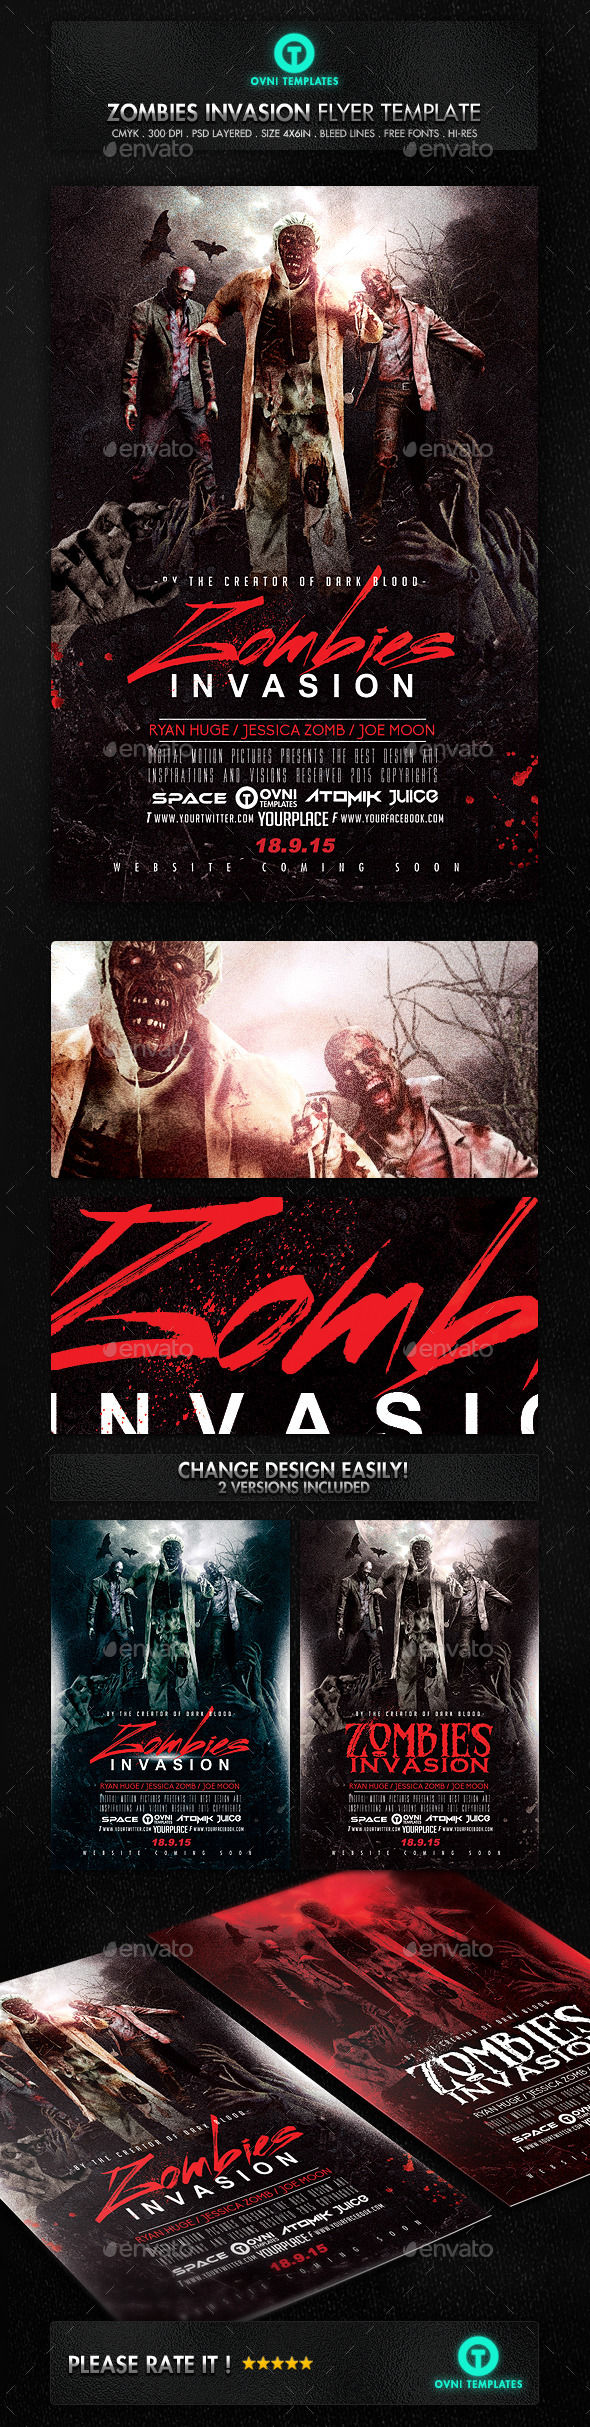 Zombies Dead Invastion Flyer Template by OVNI-TEMPLATES (Halloween party flyer)